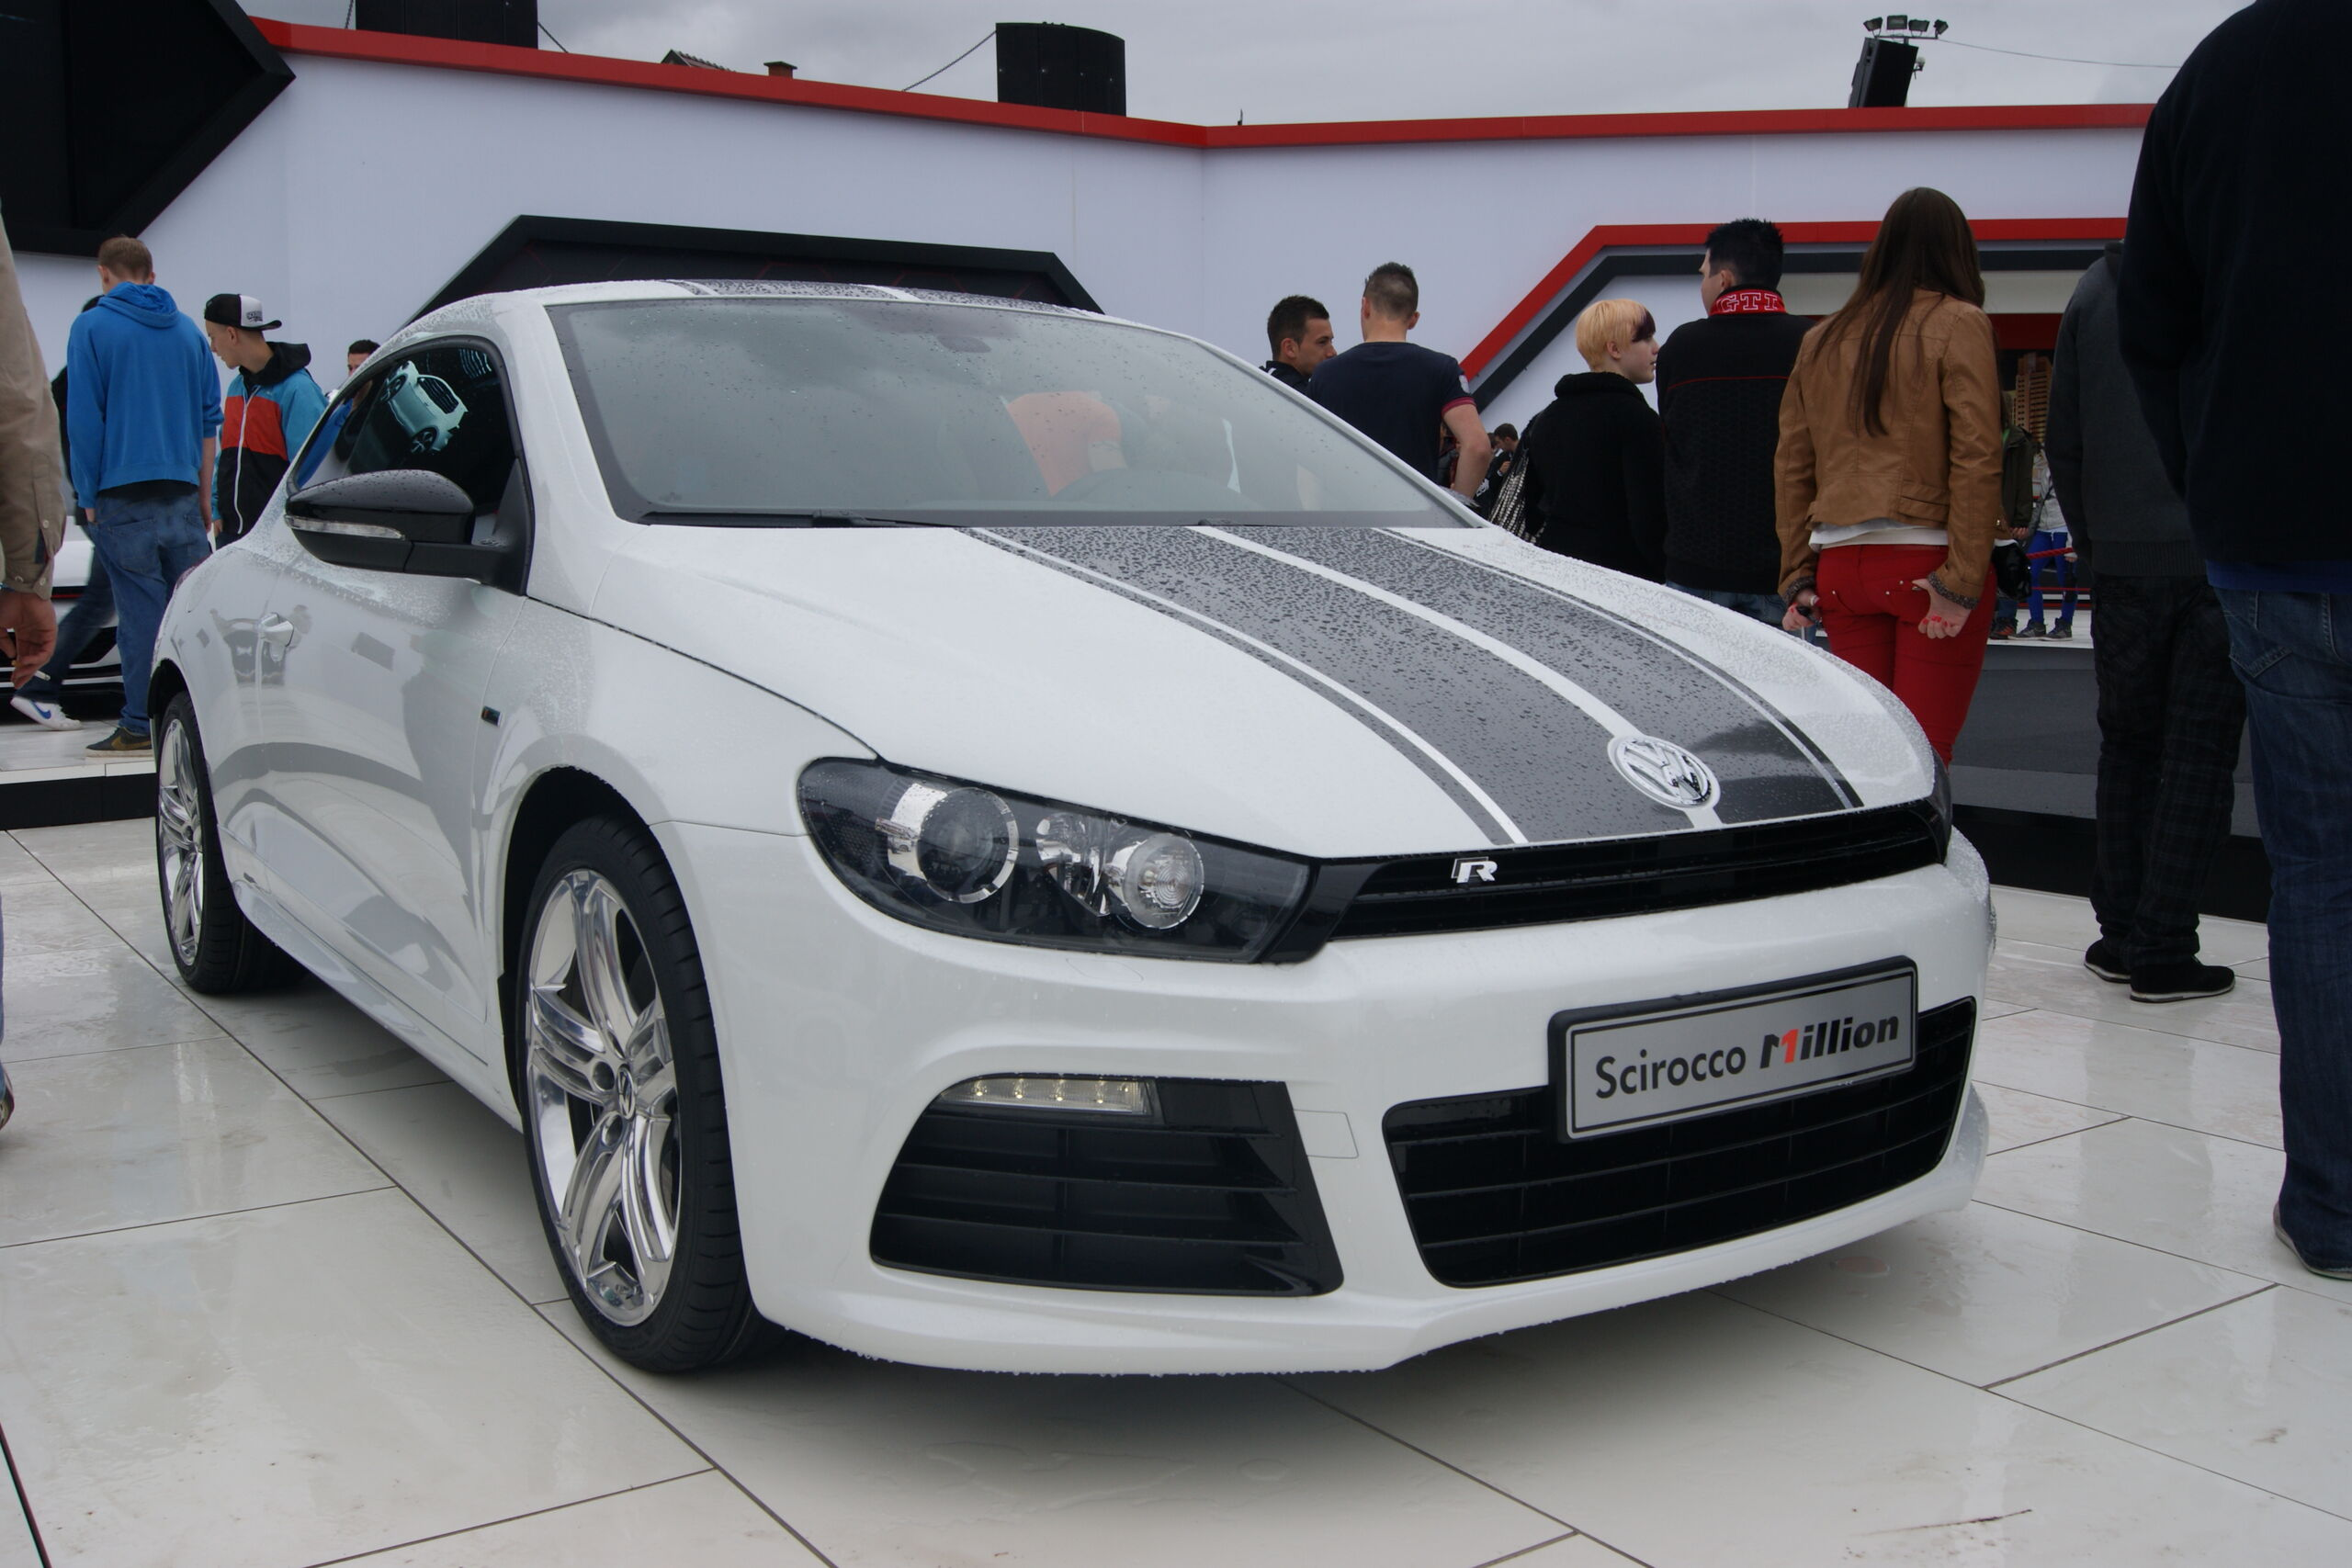 vw volkswagen scirocco million